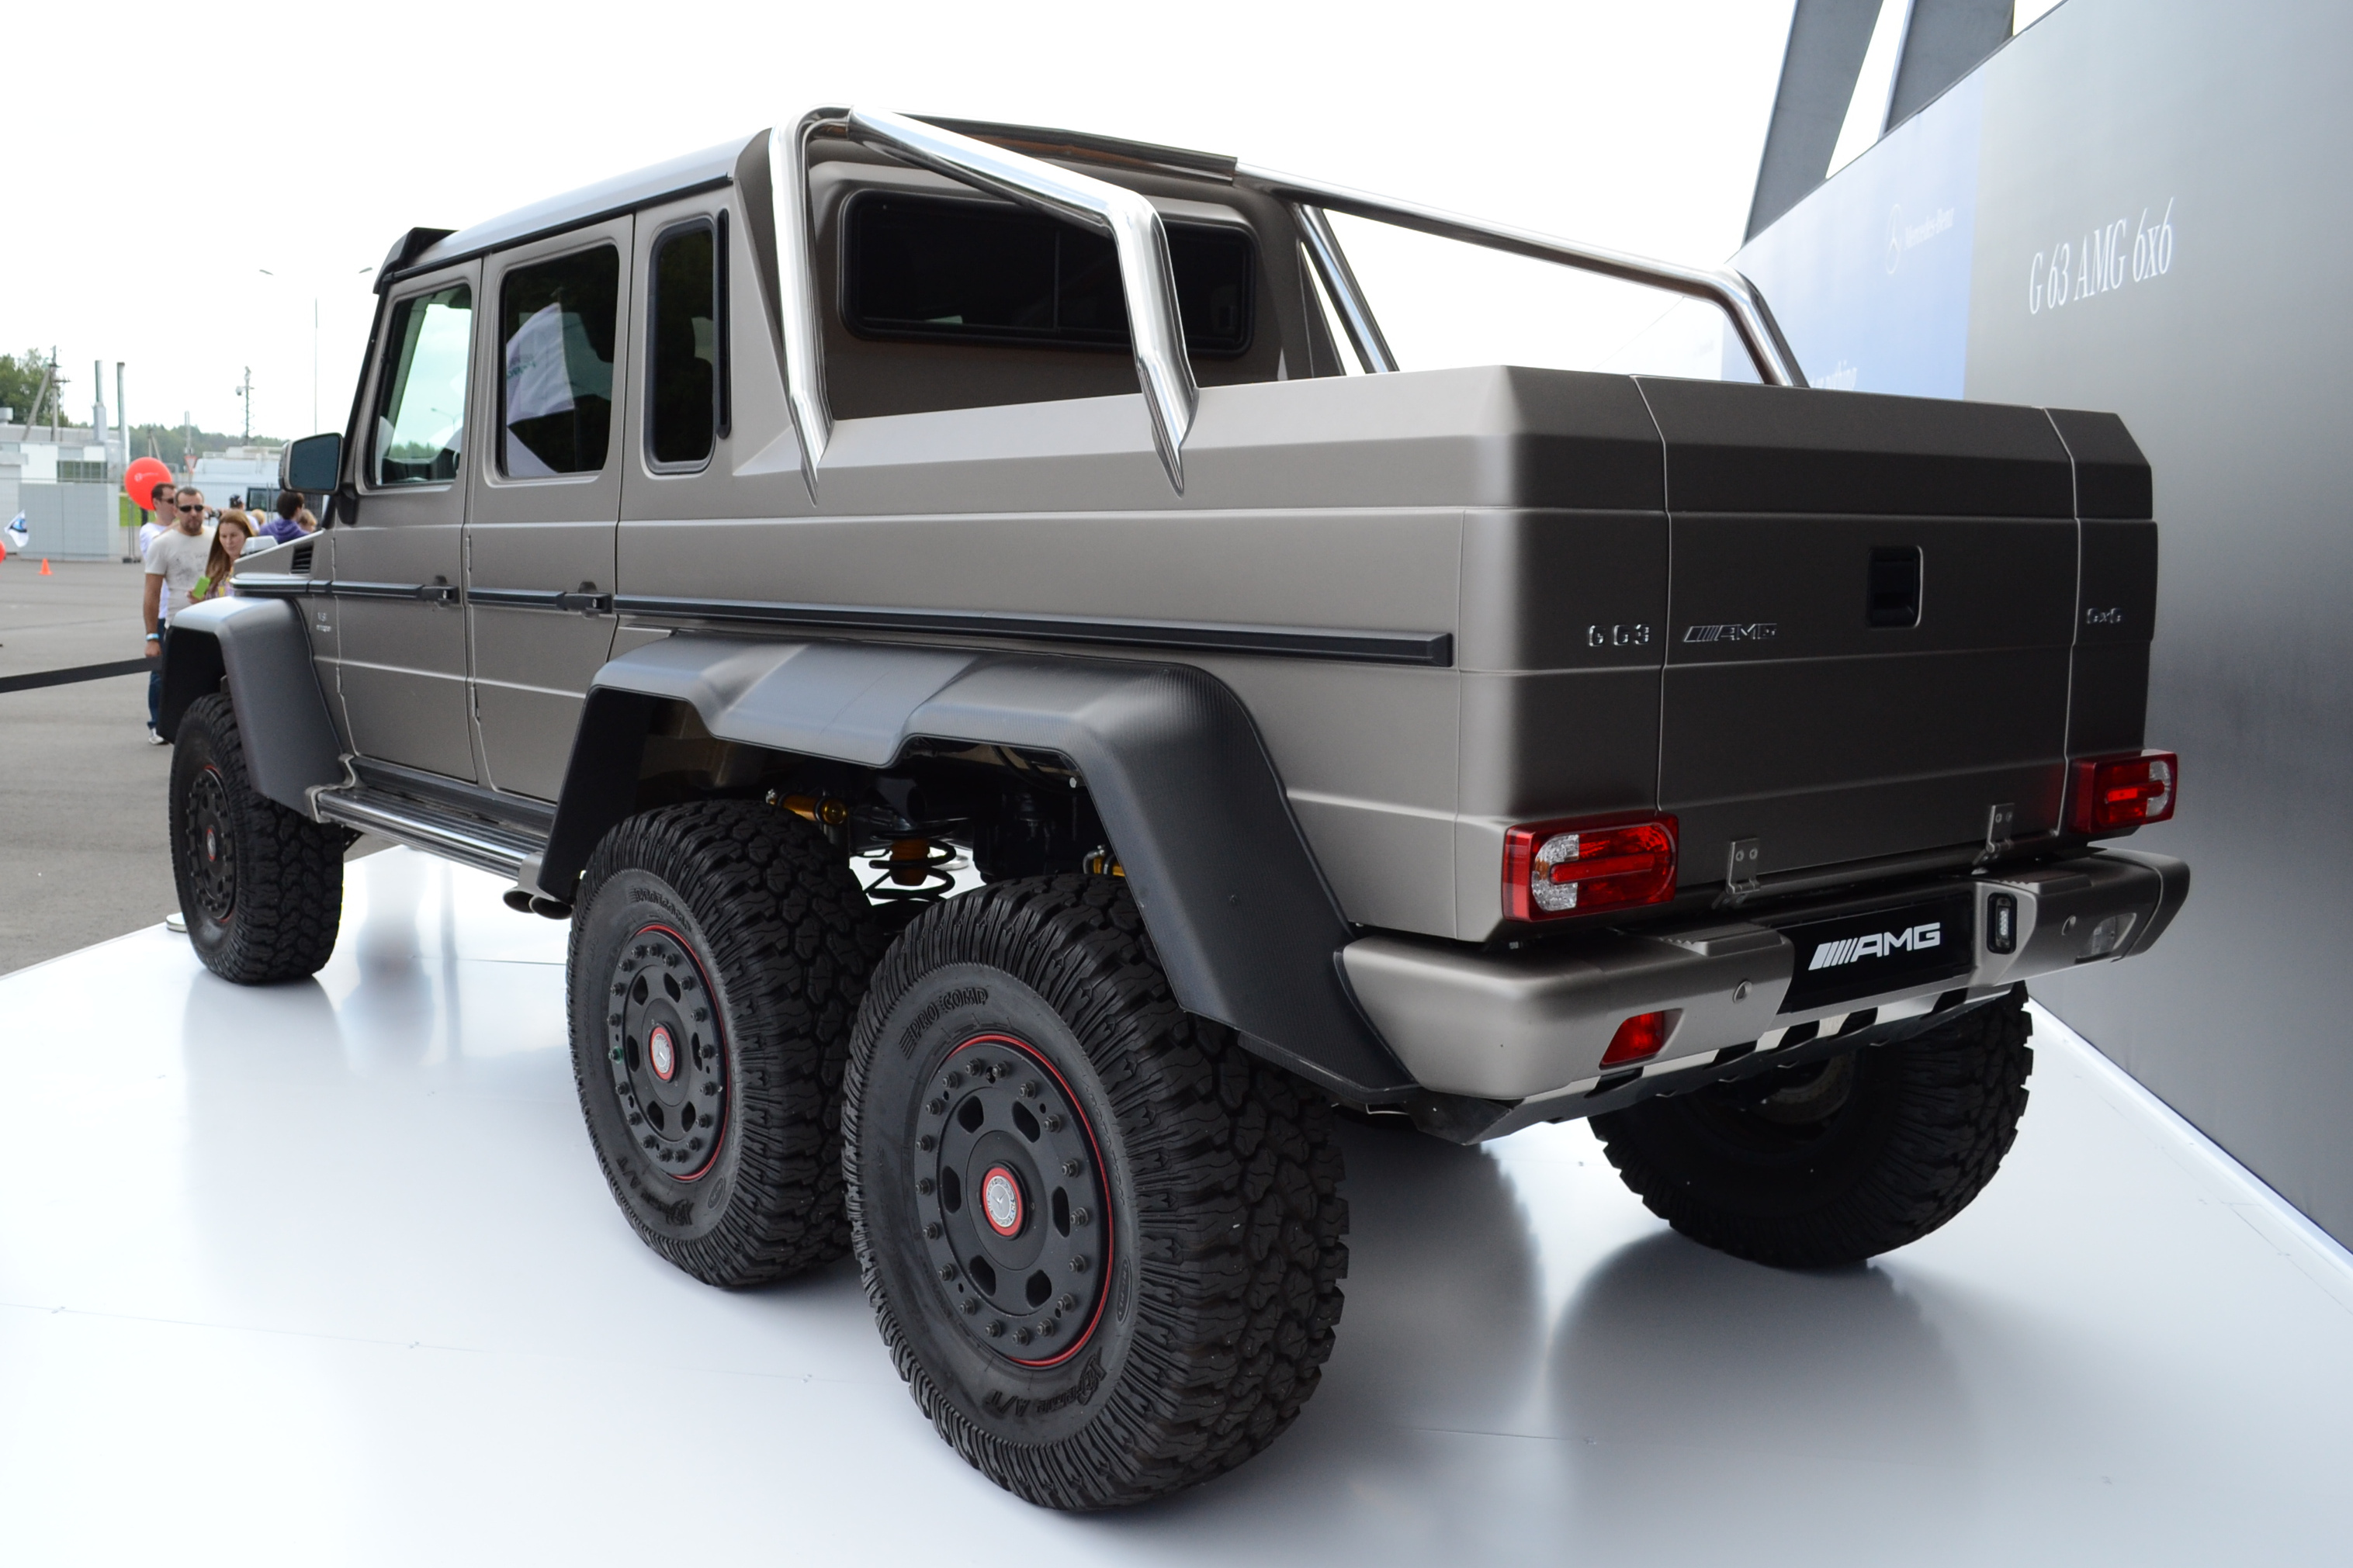 fitxer mercedes benz g 63 amg 6x6 jpg viquip dia l 39 enciclop dia lliure. Black Bedroom Furniture Sets. Home Design Ideas